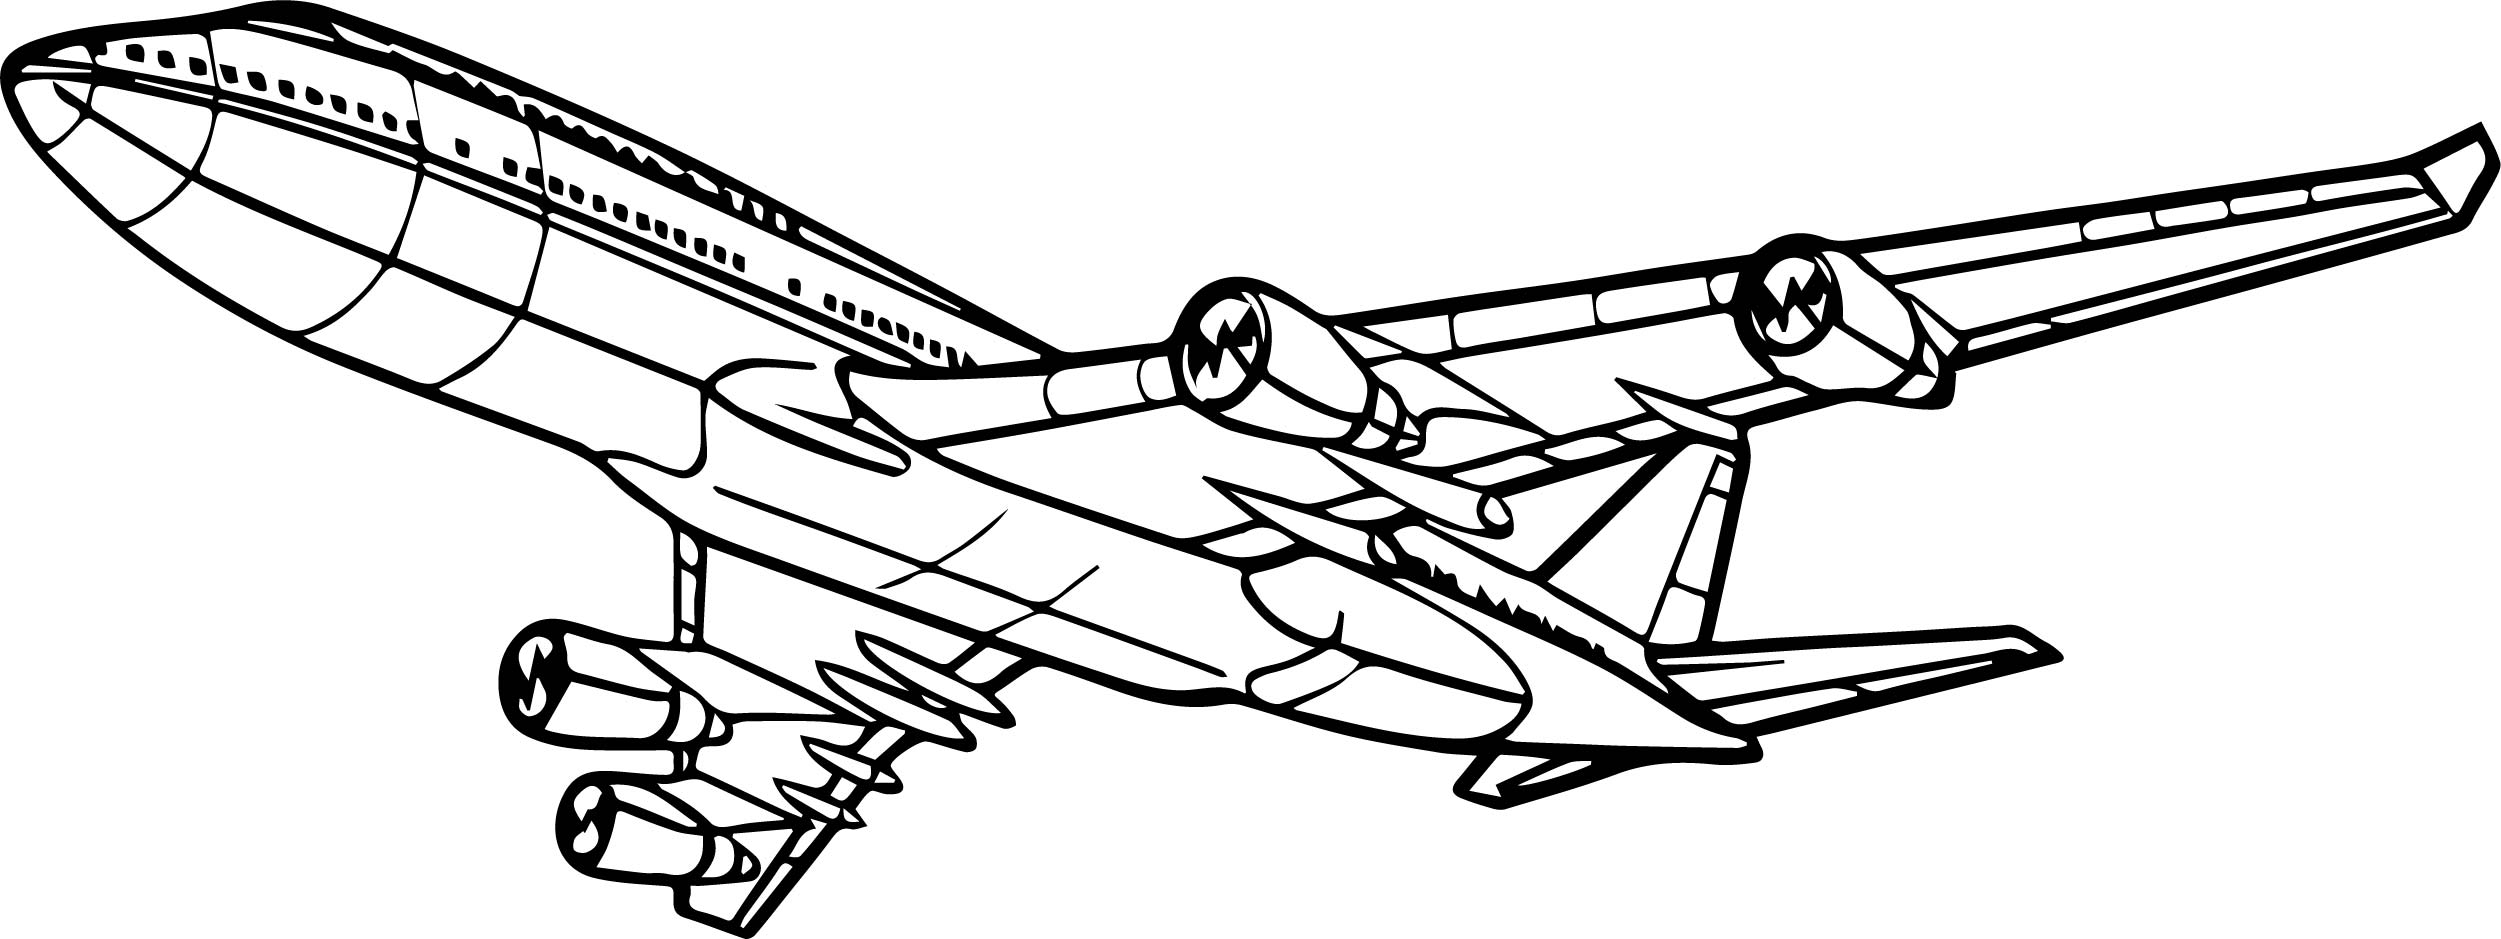 amazing airplane coloring page wecoloringpage